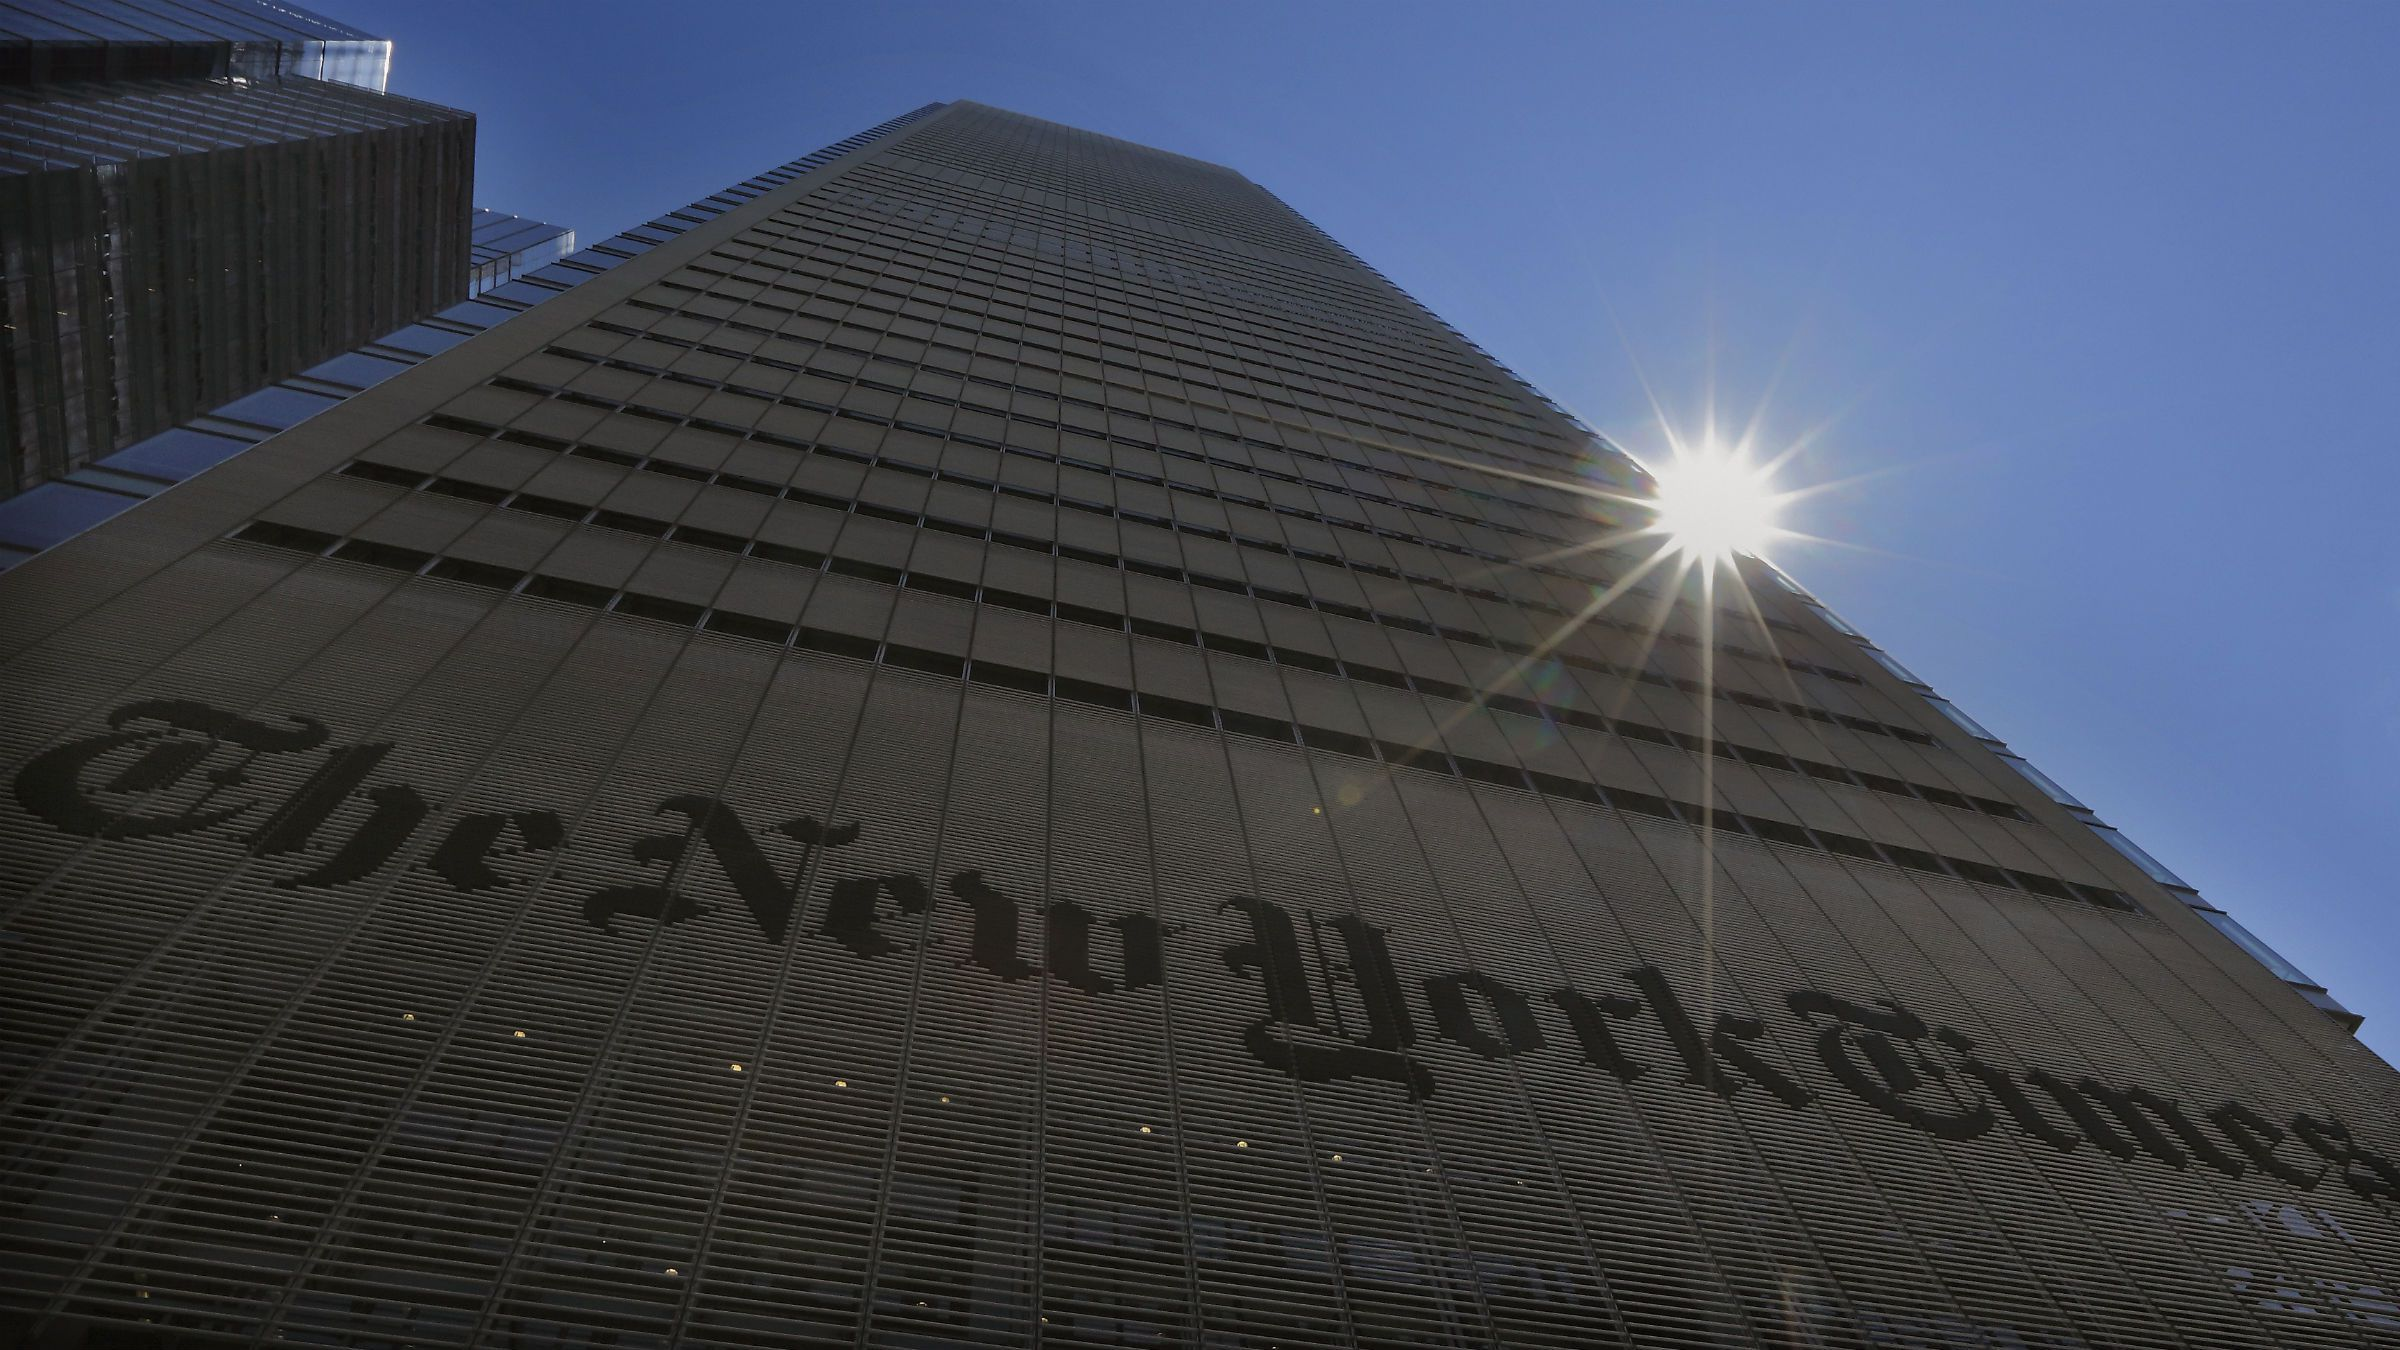 The sun peaks over the New York Times Building in New York August 14, 2013. People accessing nytimes.com earlier on Wednesday saw a message that the service was unavailable. New York Times Co spokeswoman Eileen Murphy said the company thinks the cause of the outage was related to a scheduled maintenance update, which occurred within seconds of the website going down.